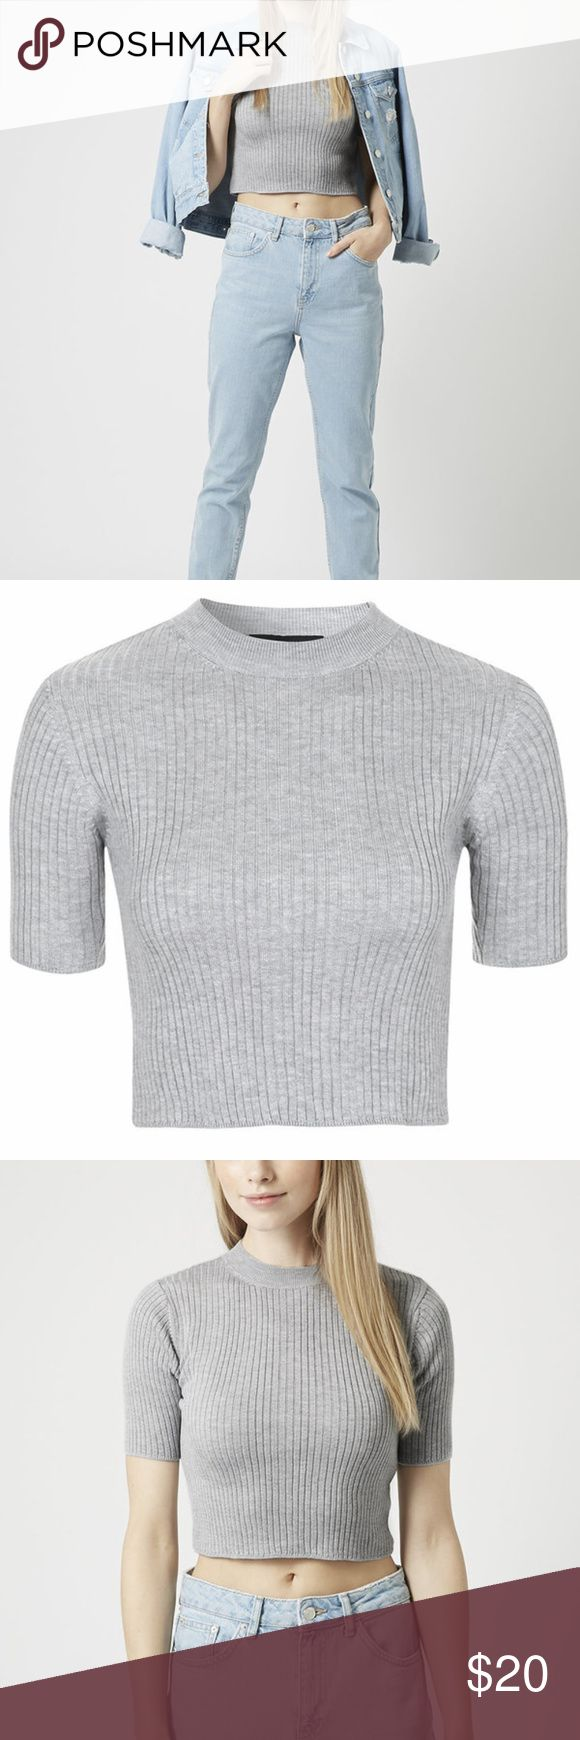 NWOT Top Shop Grey Crop Sweater Topshop Tall Wide Ribbed Funnel Neck Crop Top in Grey.  Great with a pair of ripped boyfriend jeans and sneakers or paired with high waisted black jeans and heels for a night out! Topshop Tops Crop Tops